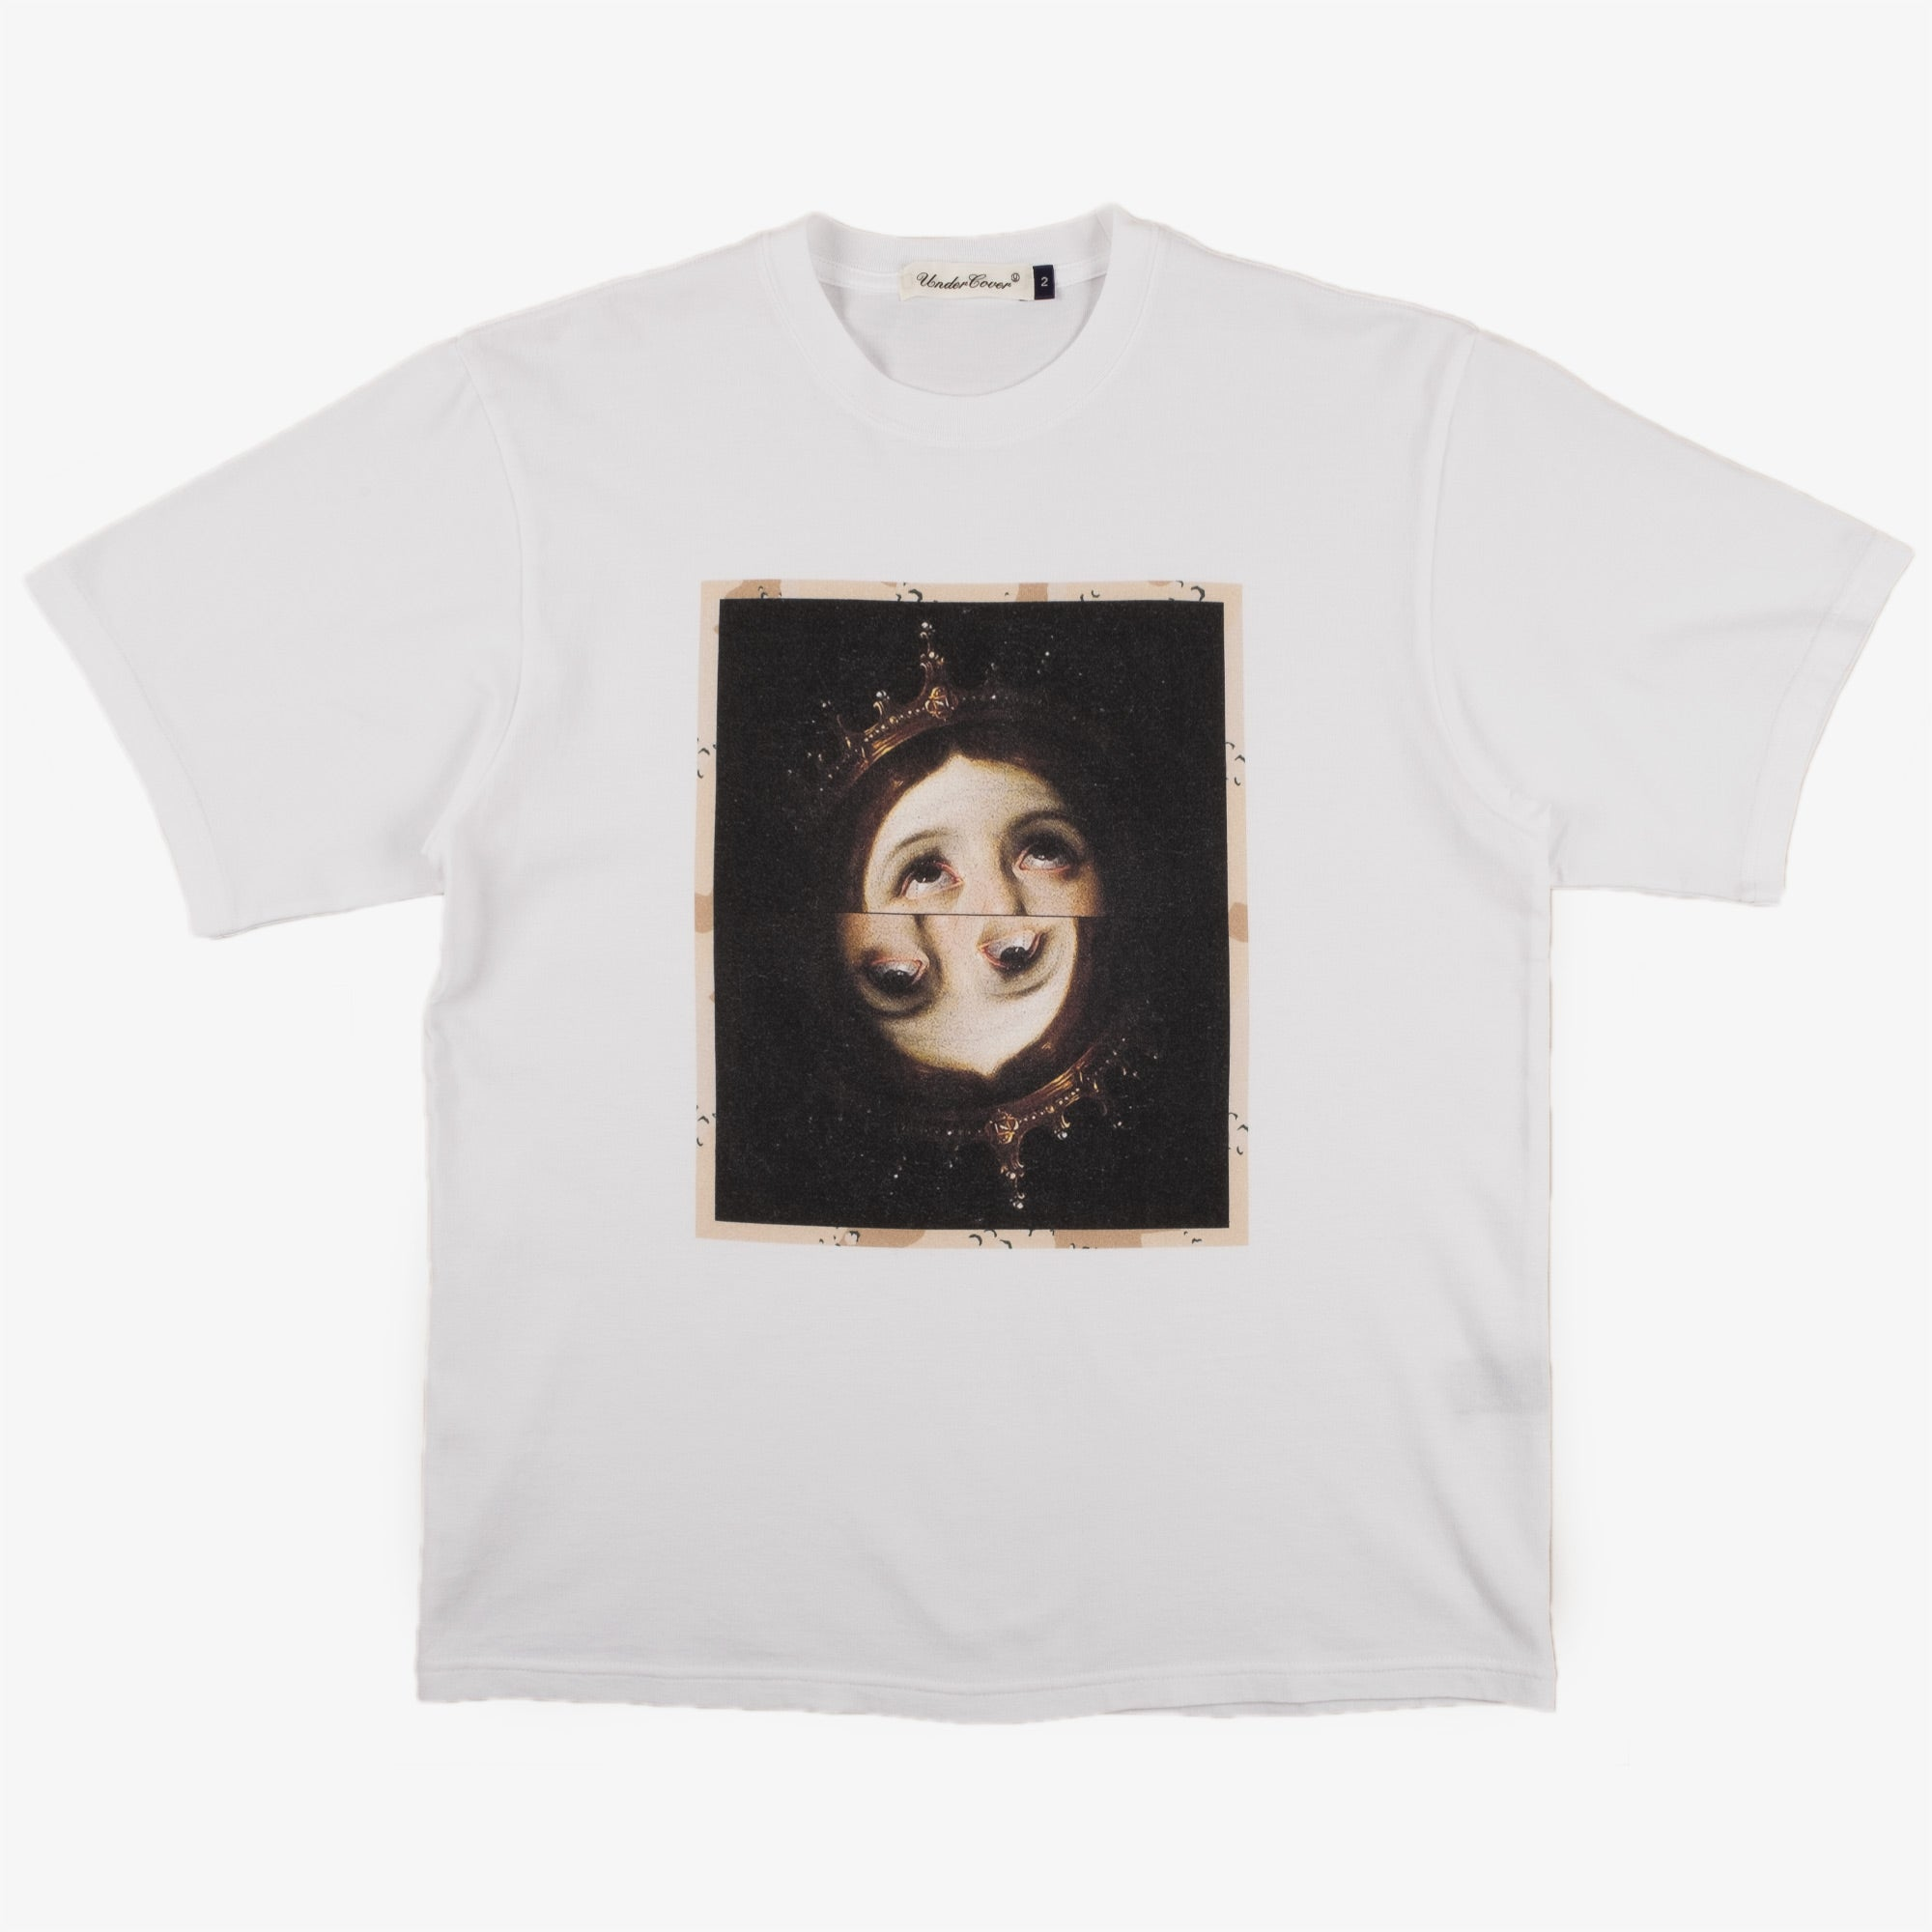 Undercover Two Faces Tee UC2A3804 - White 1